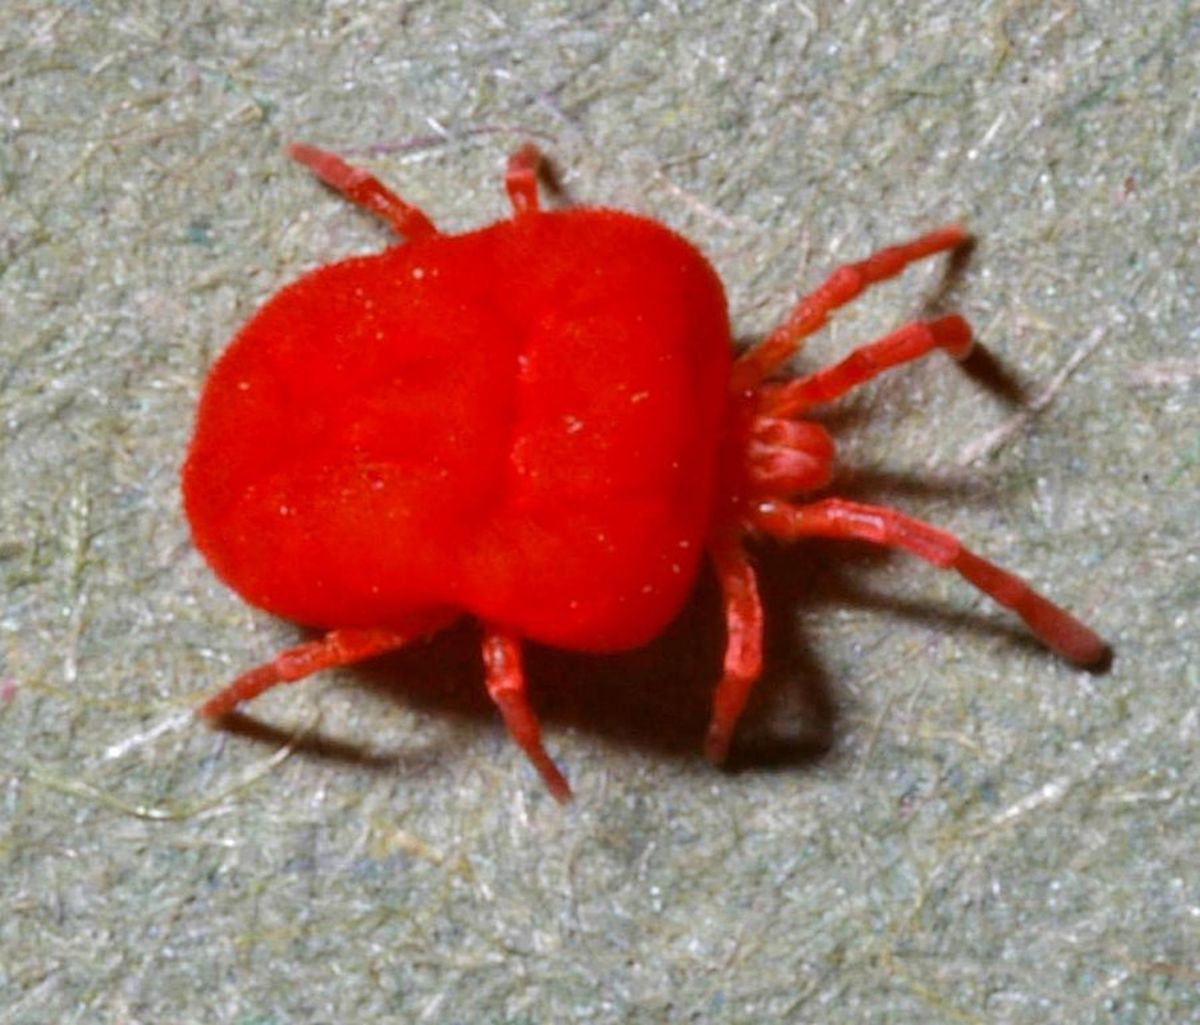 Harvest Mites, also known as Chiggers, have been blamed for SCI